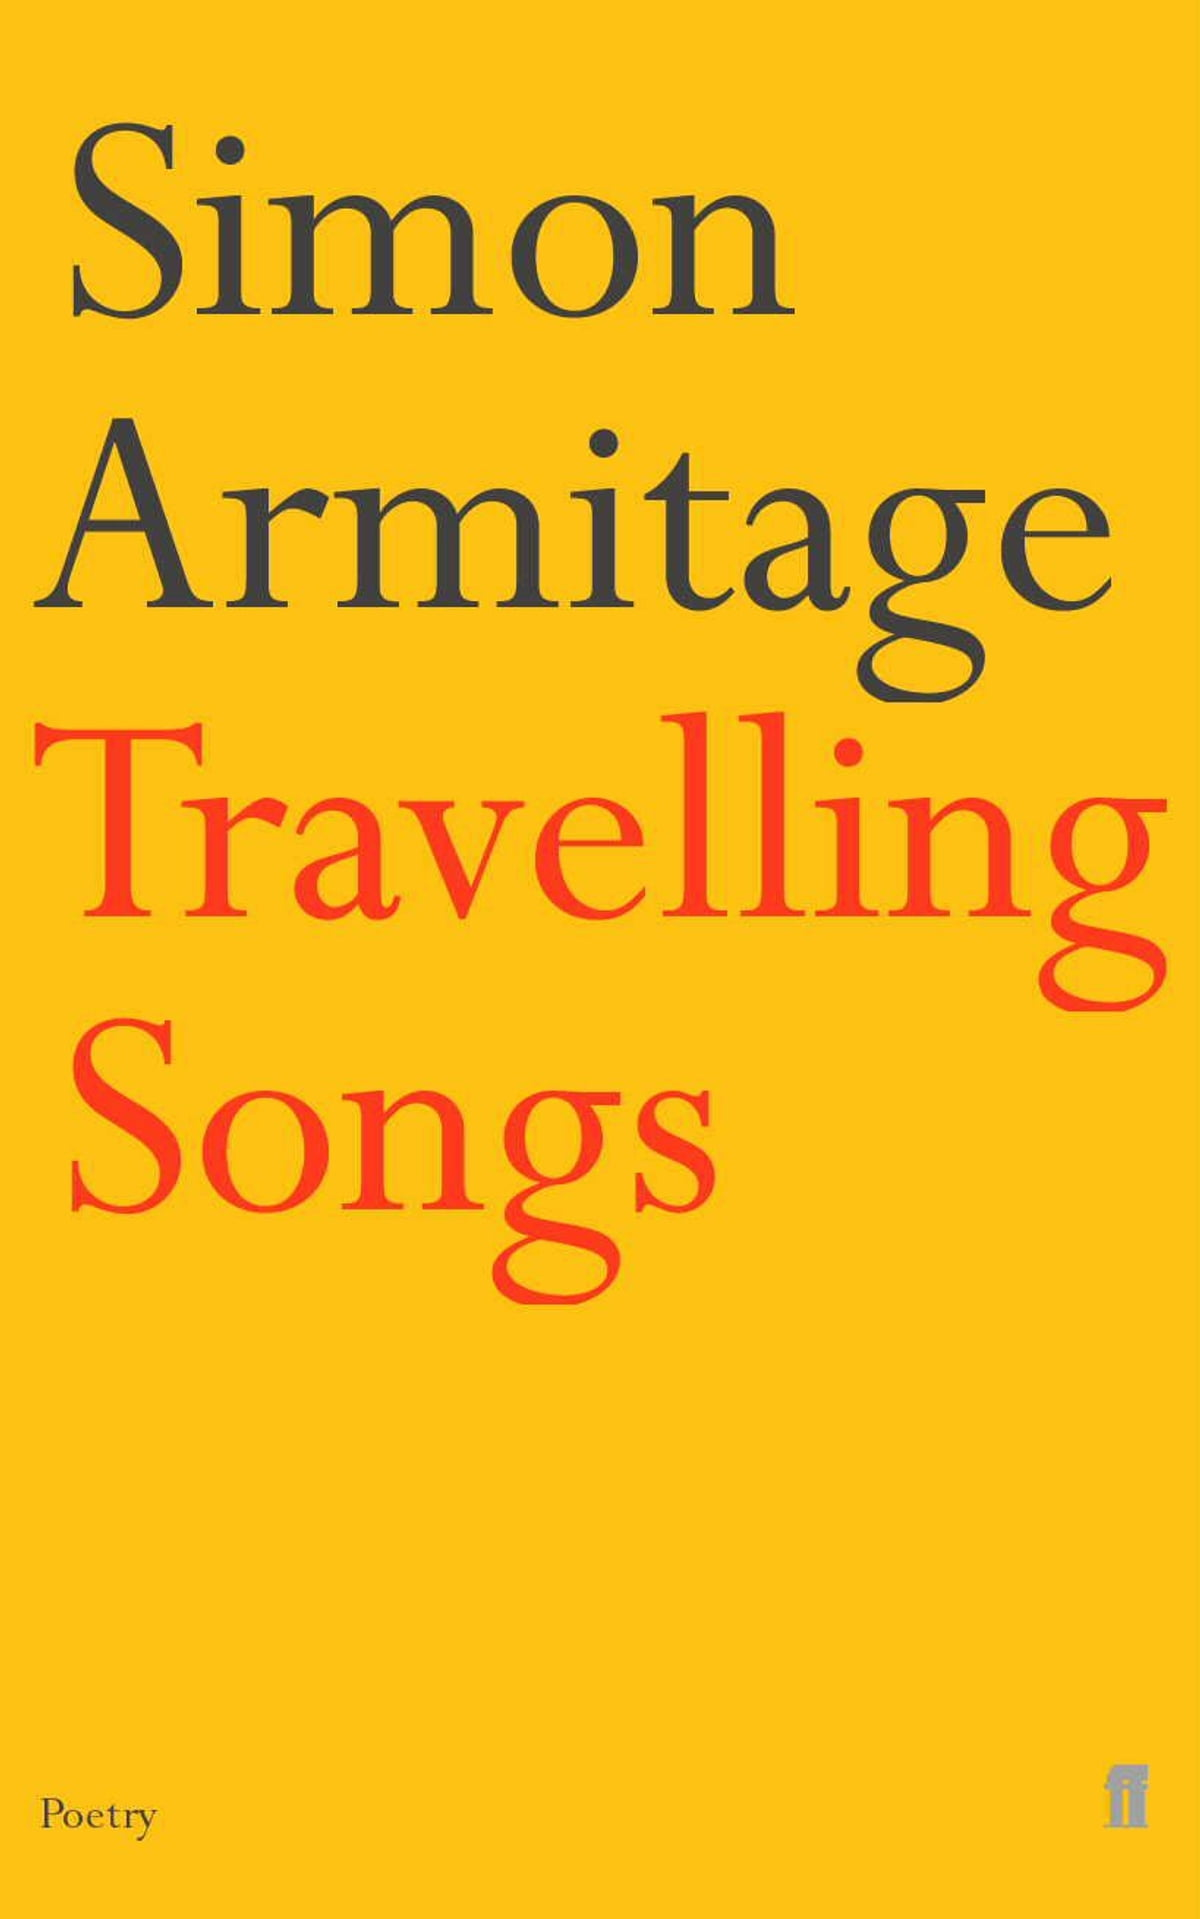 Travelling songs ebook by simon armitage 9780571261765 rakuten travelling songs ebook by simon armitage 9780571261765 rakuten kobo fandeluxe Ebook collections